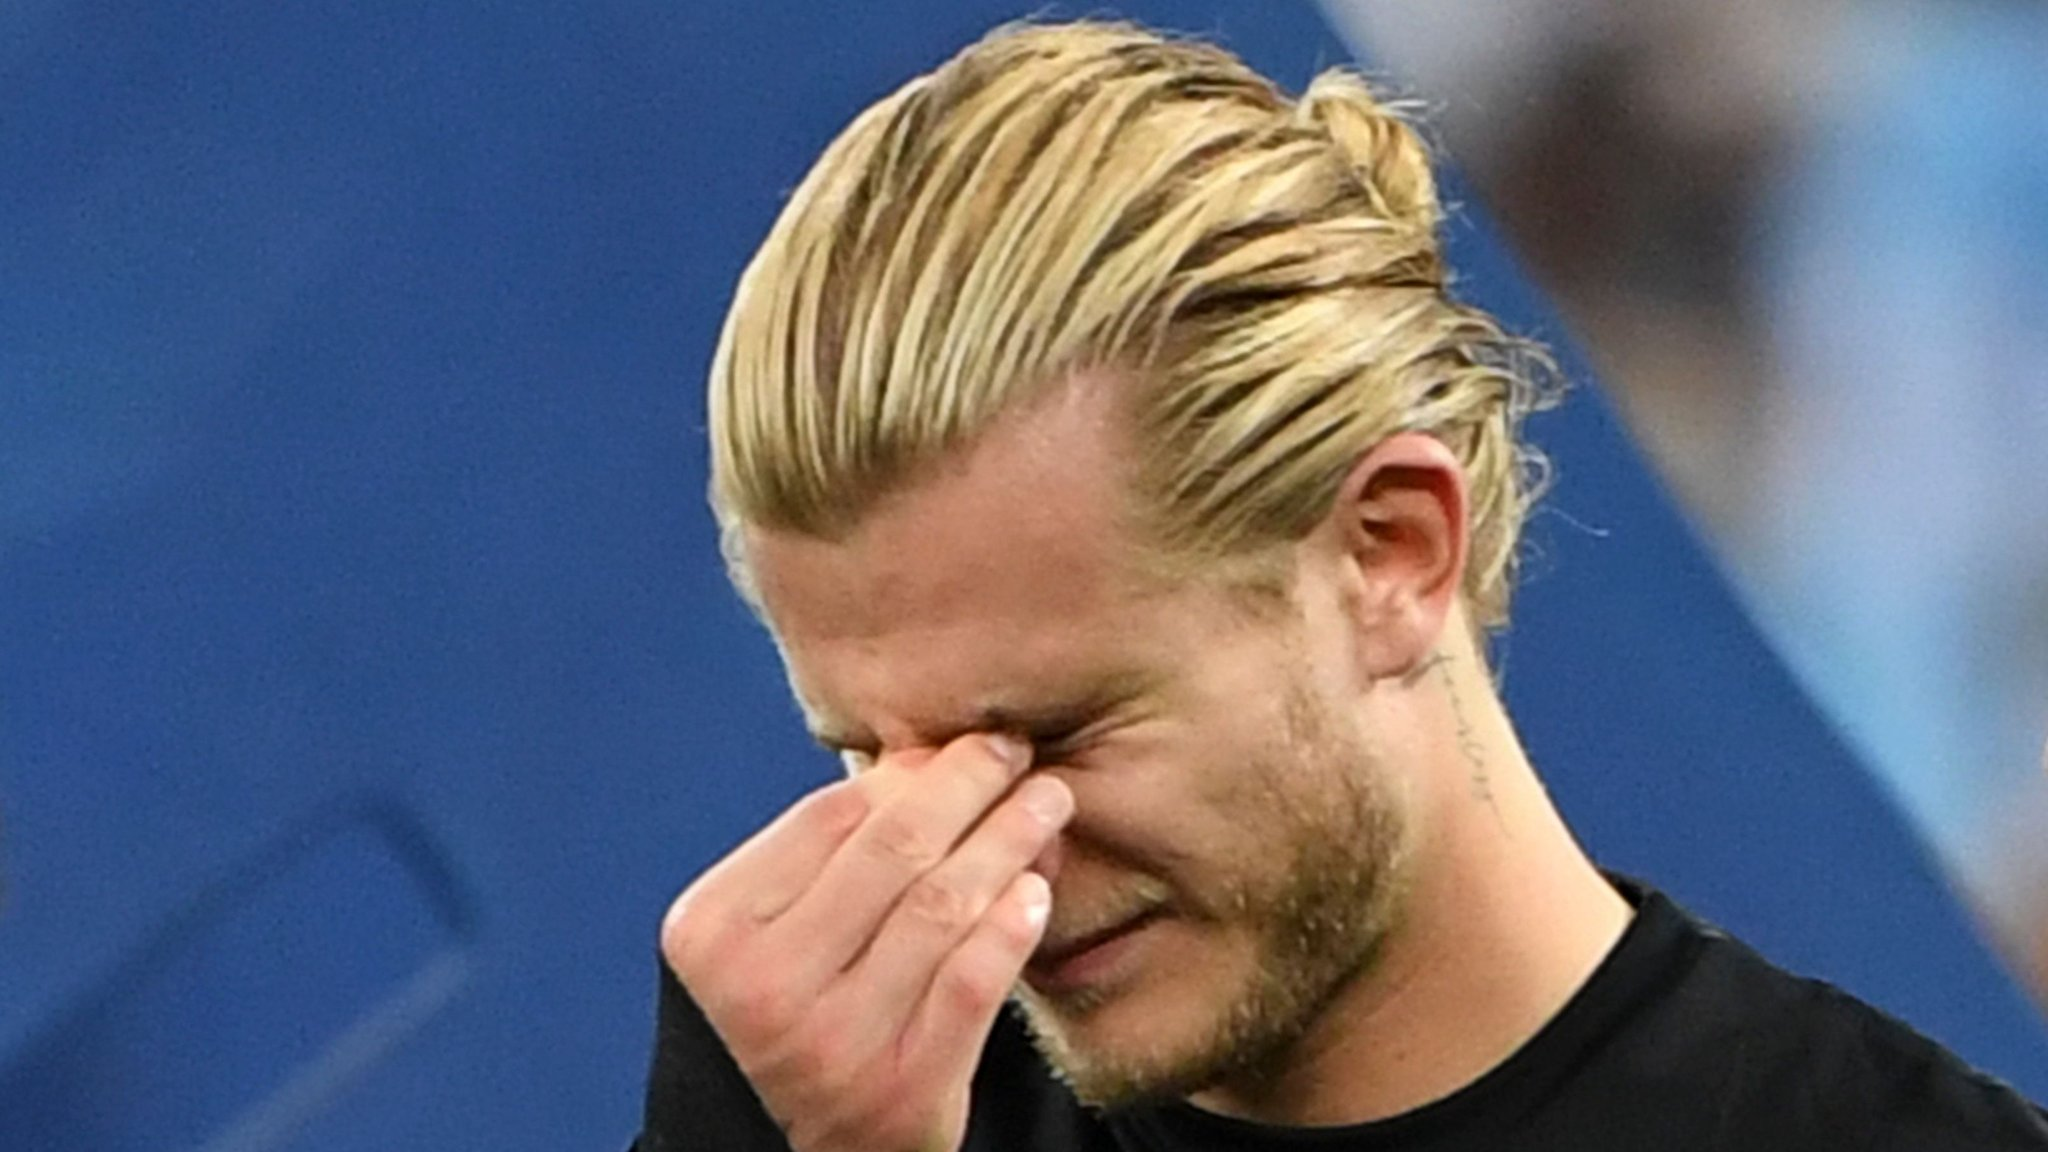 Champions League final: Liverpool goalkeeper Loris Karius 'infinitely sorry' for mistakes